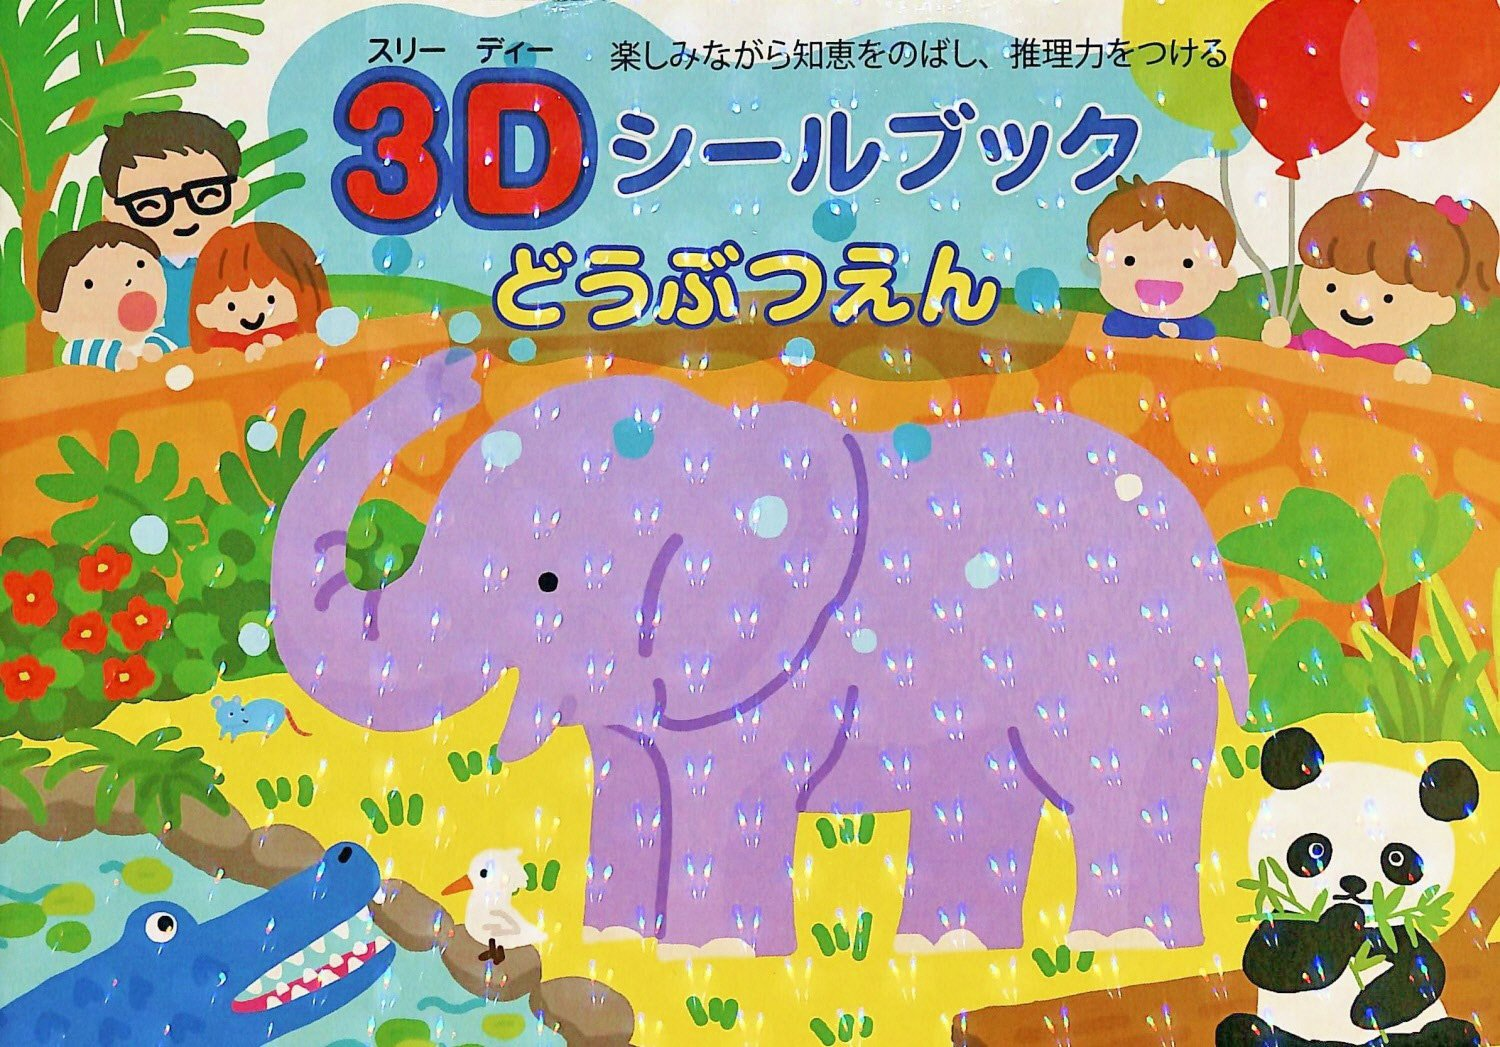 Liebam 3D Sticker Book: The Zoo - Travel Sized Sticker Book for with 85+ Reusable 3D-Effect Stickers. Bonus Coloring Pages!!!